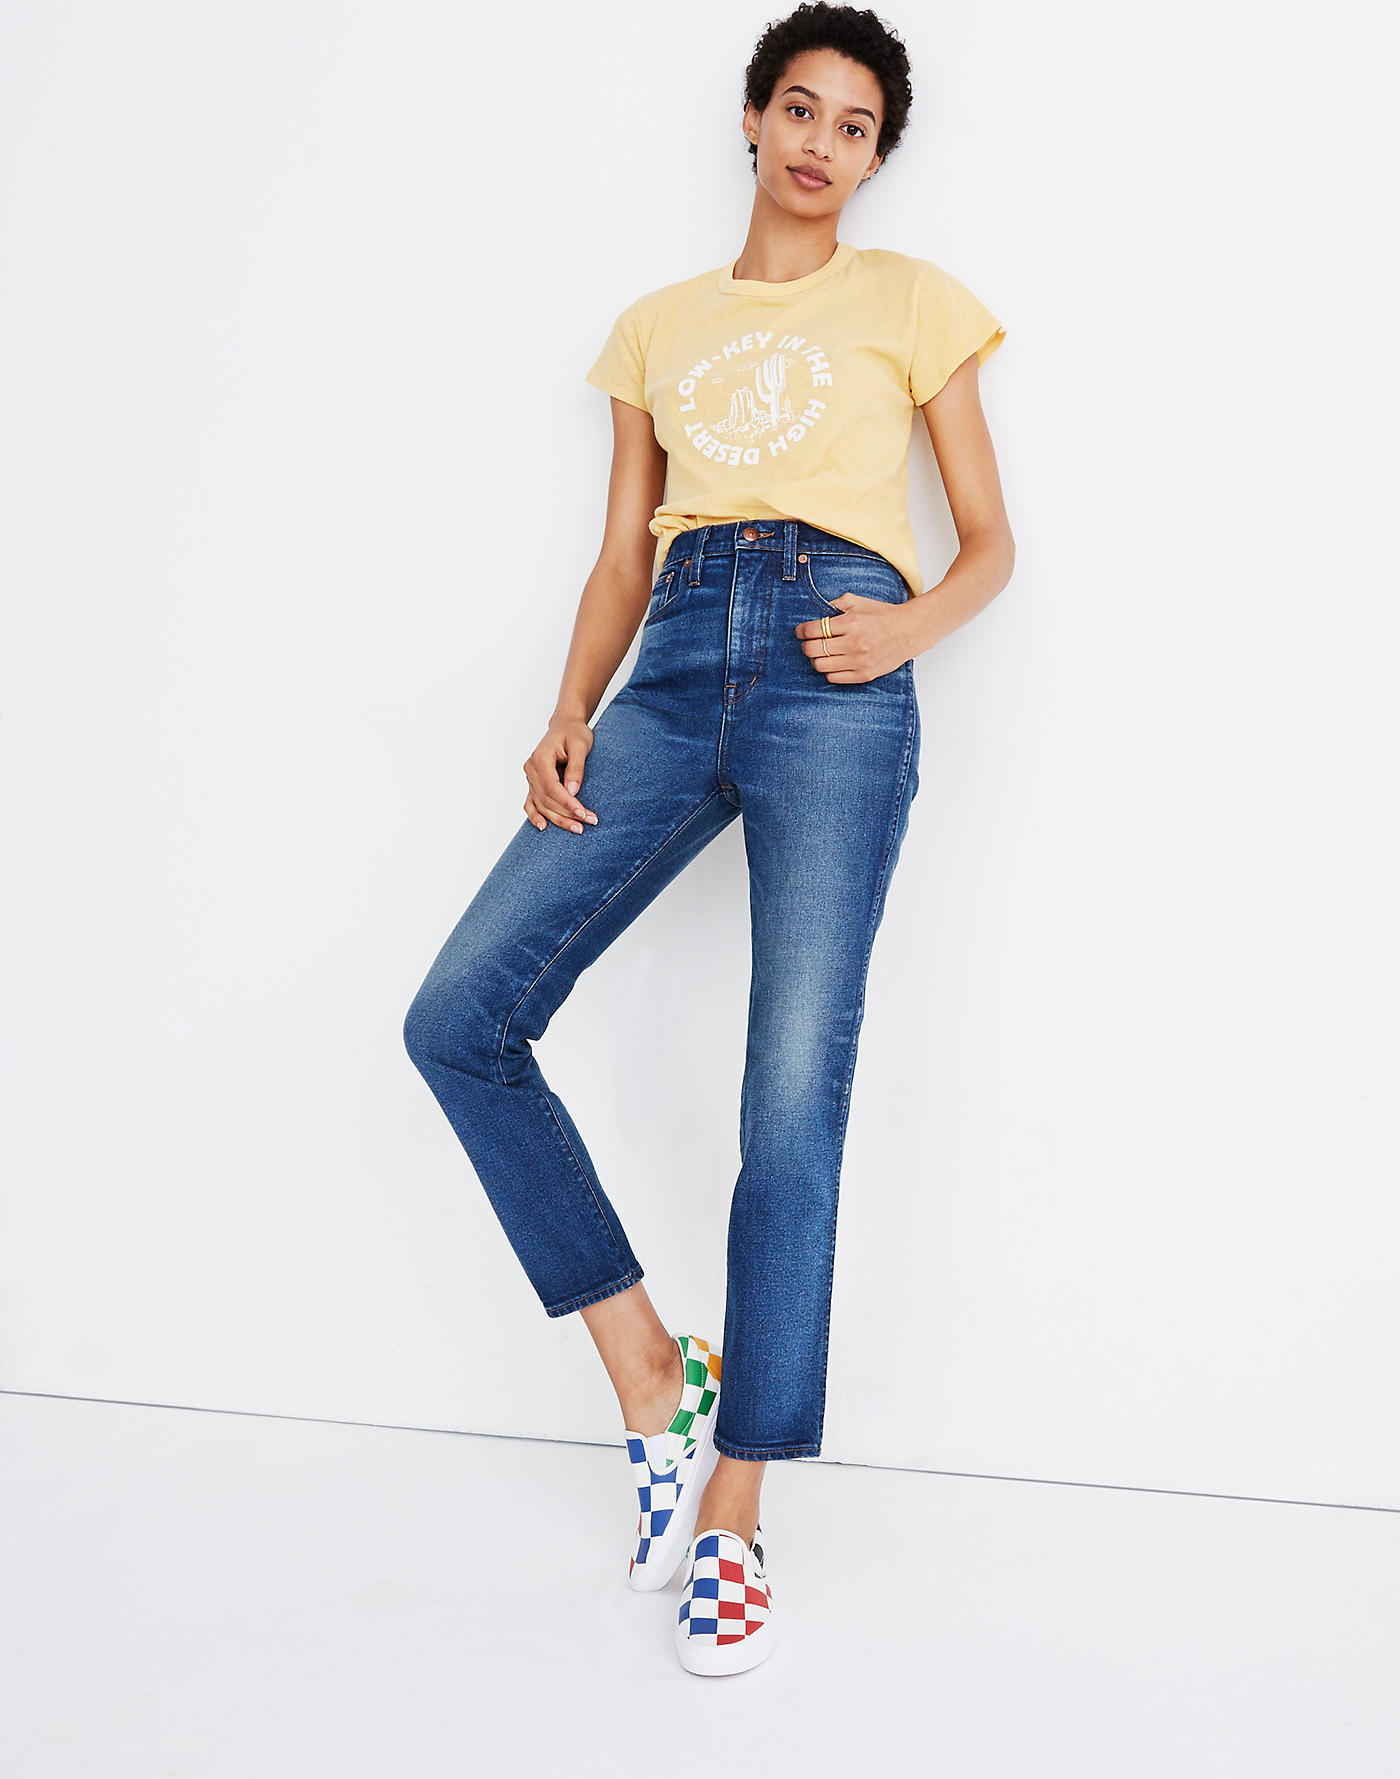 Madewell Rivet & Thread High-Rise Stovepipe Jeans in Kingman Wash